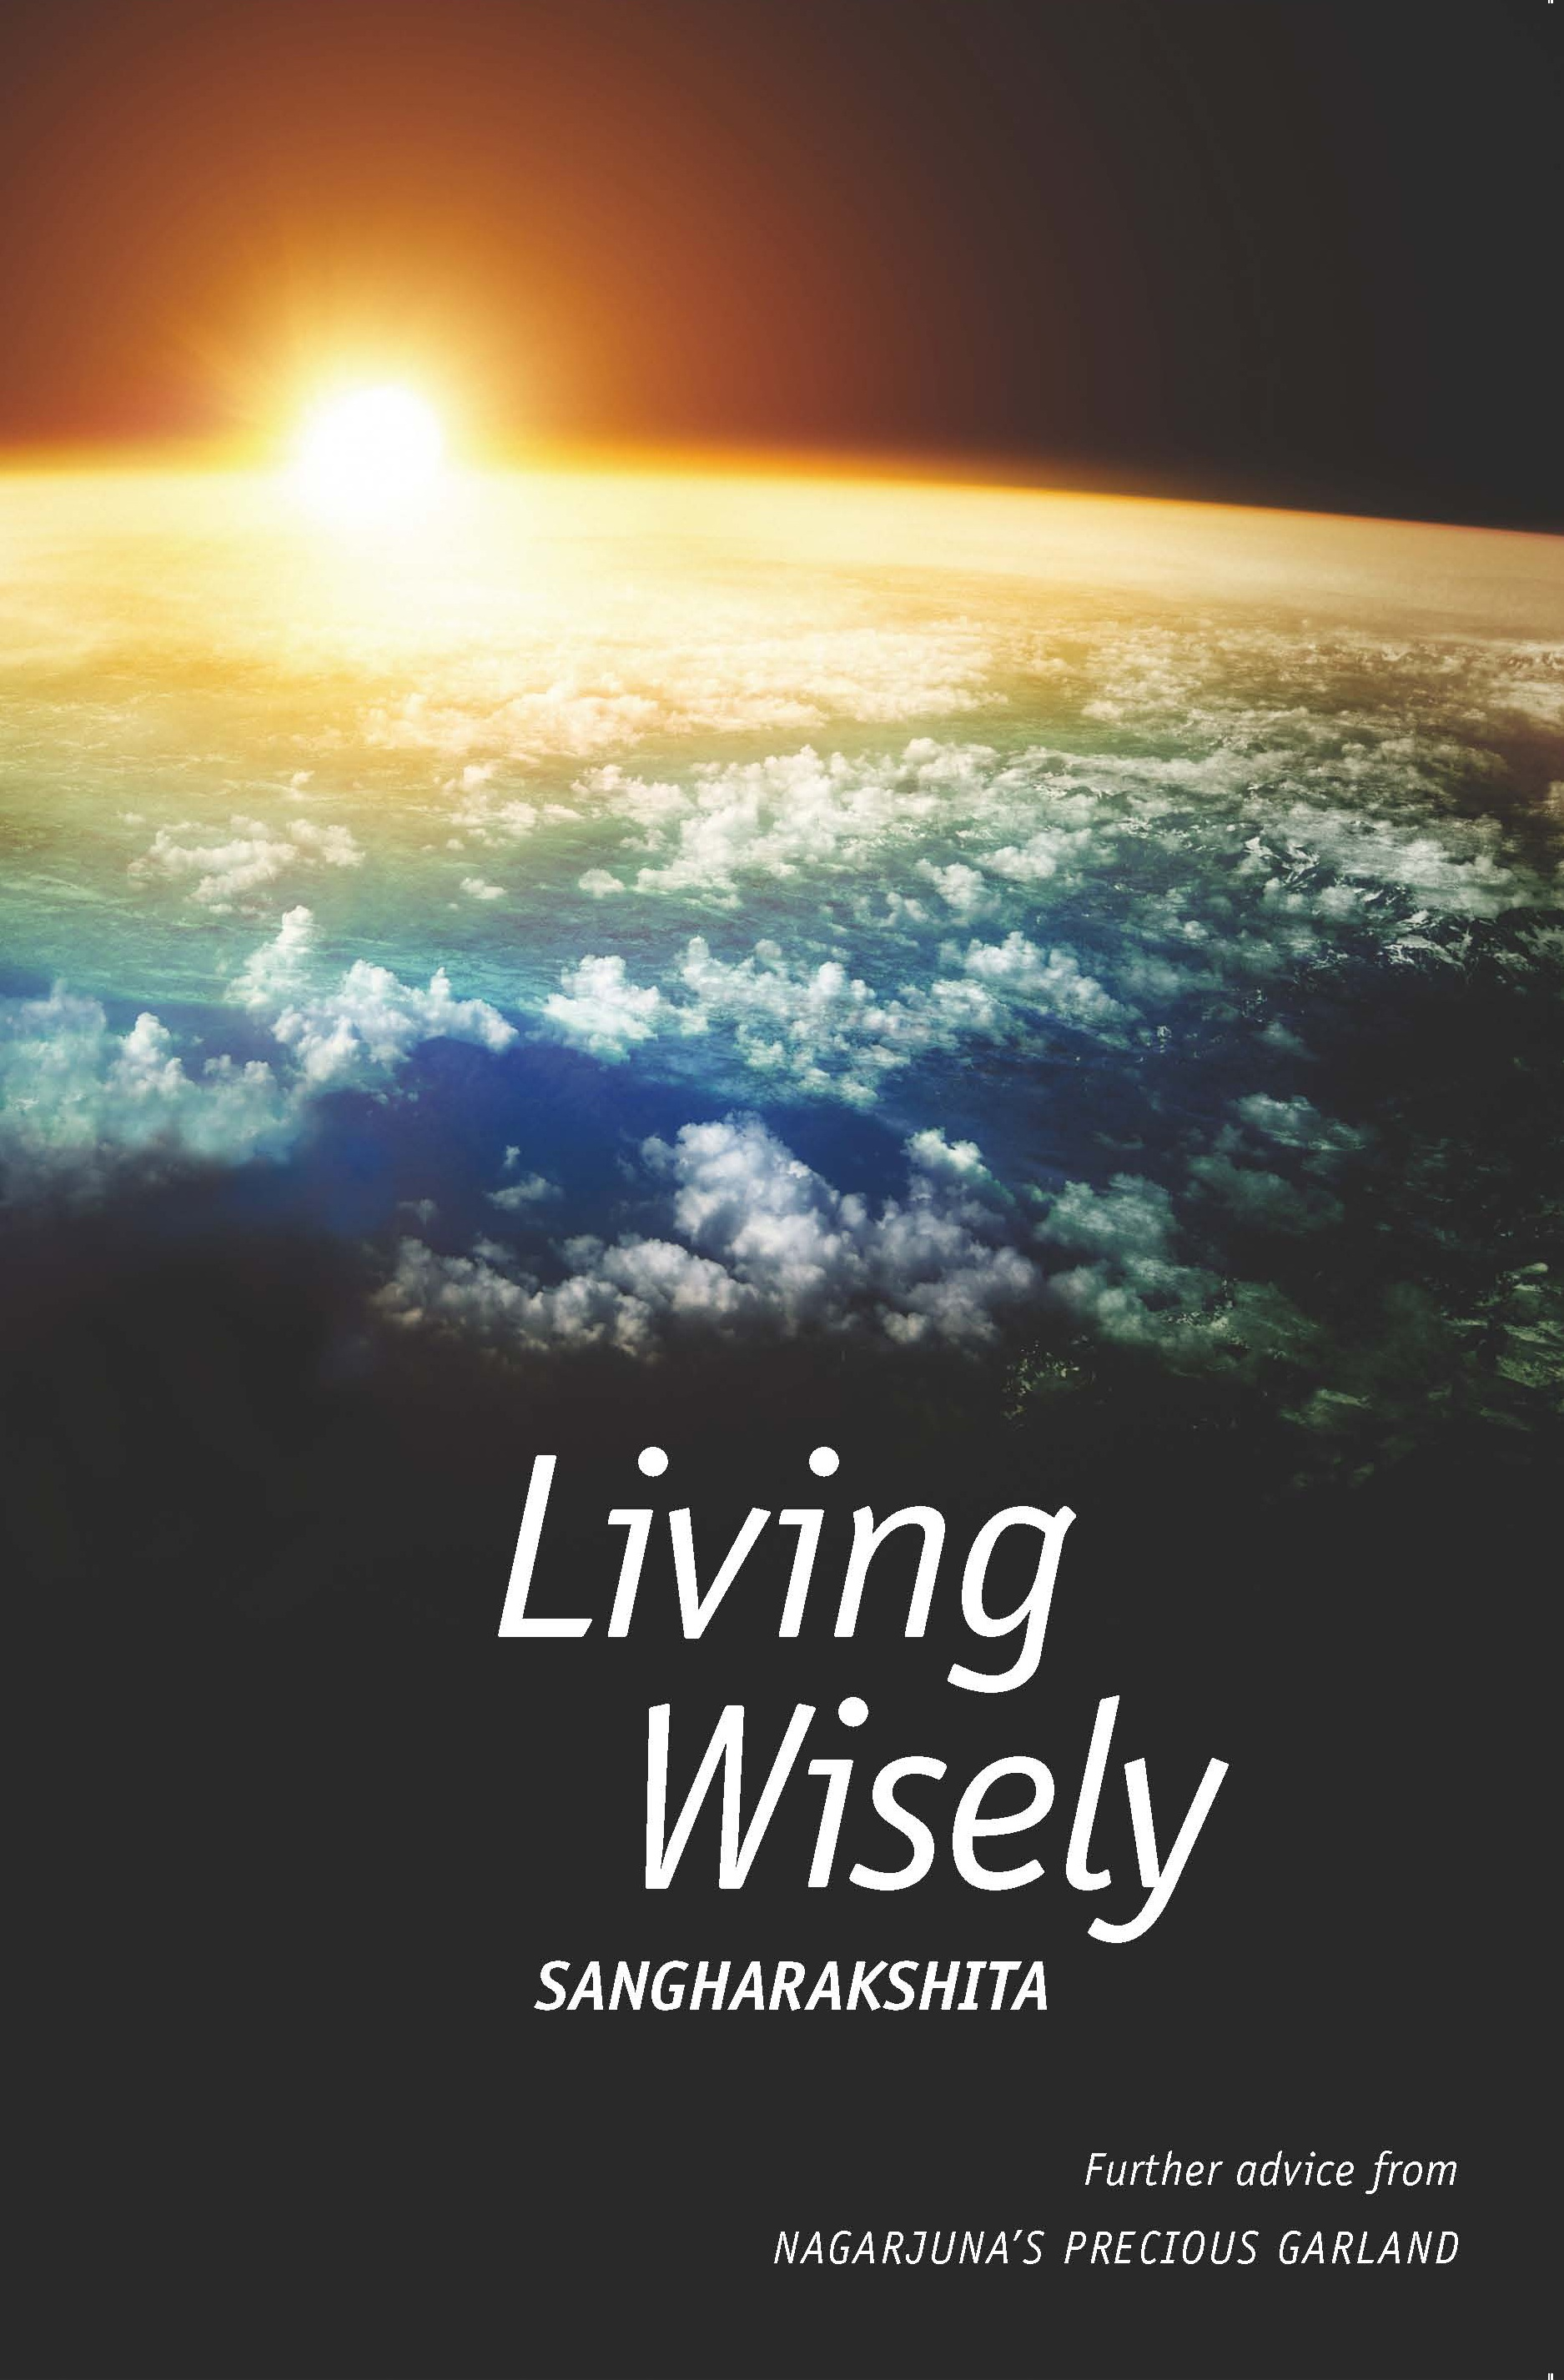 An excerpt from Sangharakshita's 'Living Wisely', released February 2013